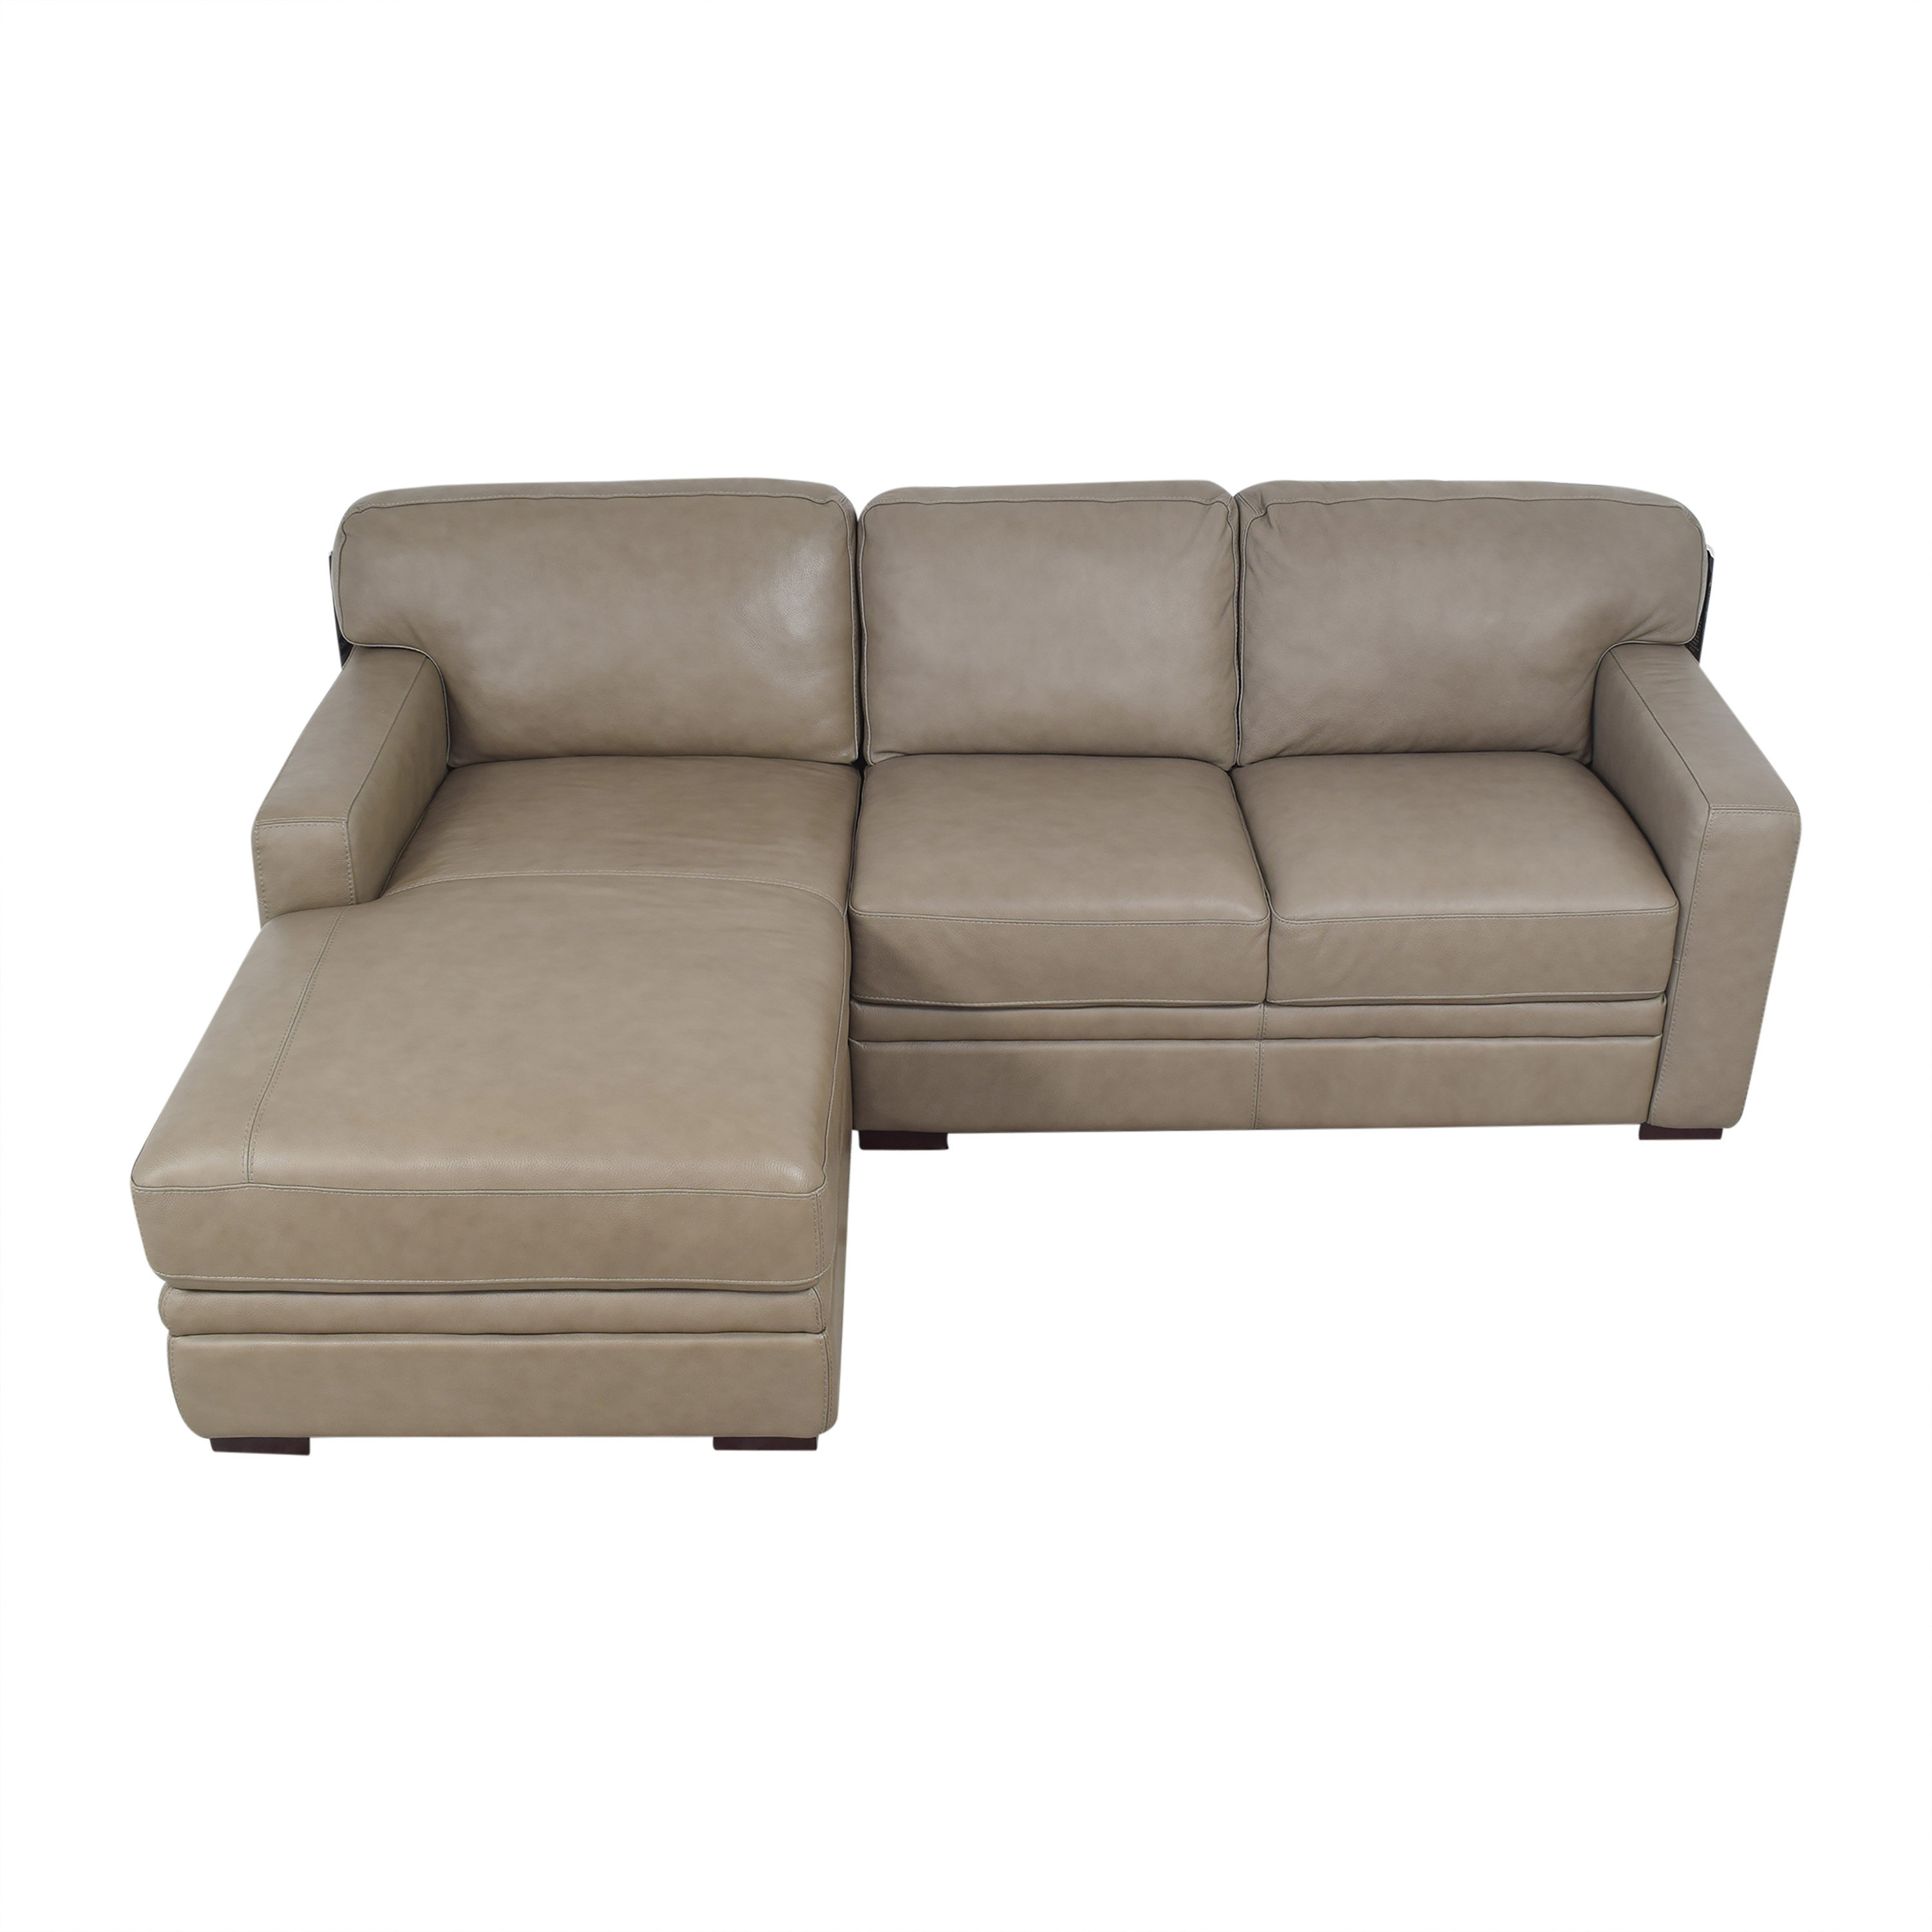 Macy's Avenell Two Piece Chaise Sectional Sofa / Sectionals